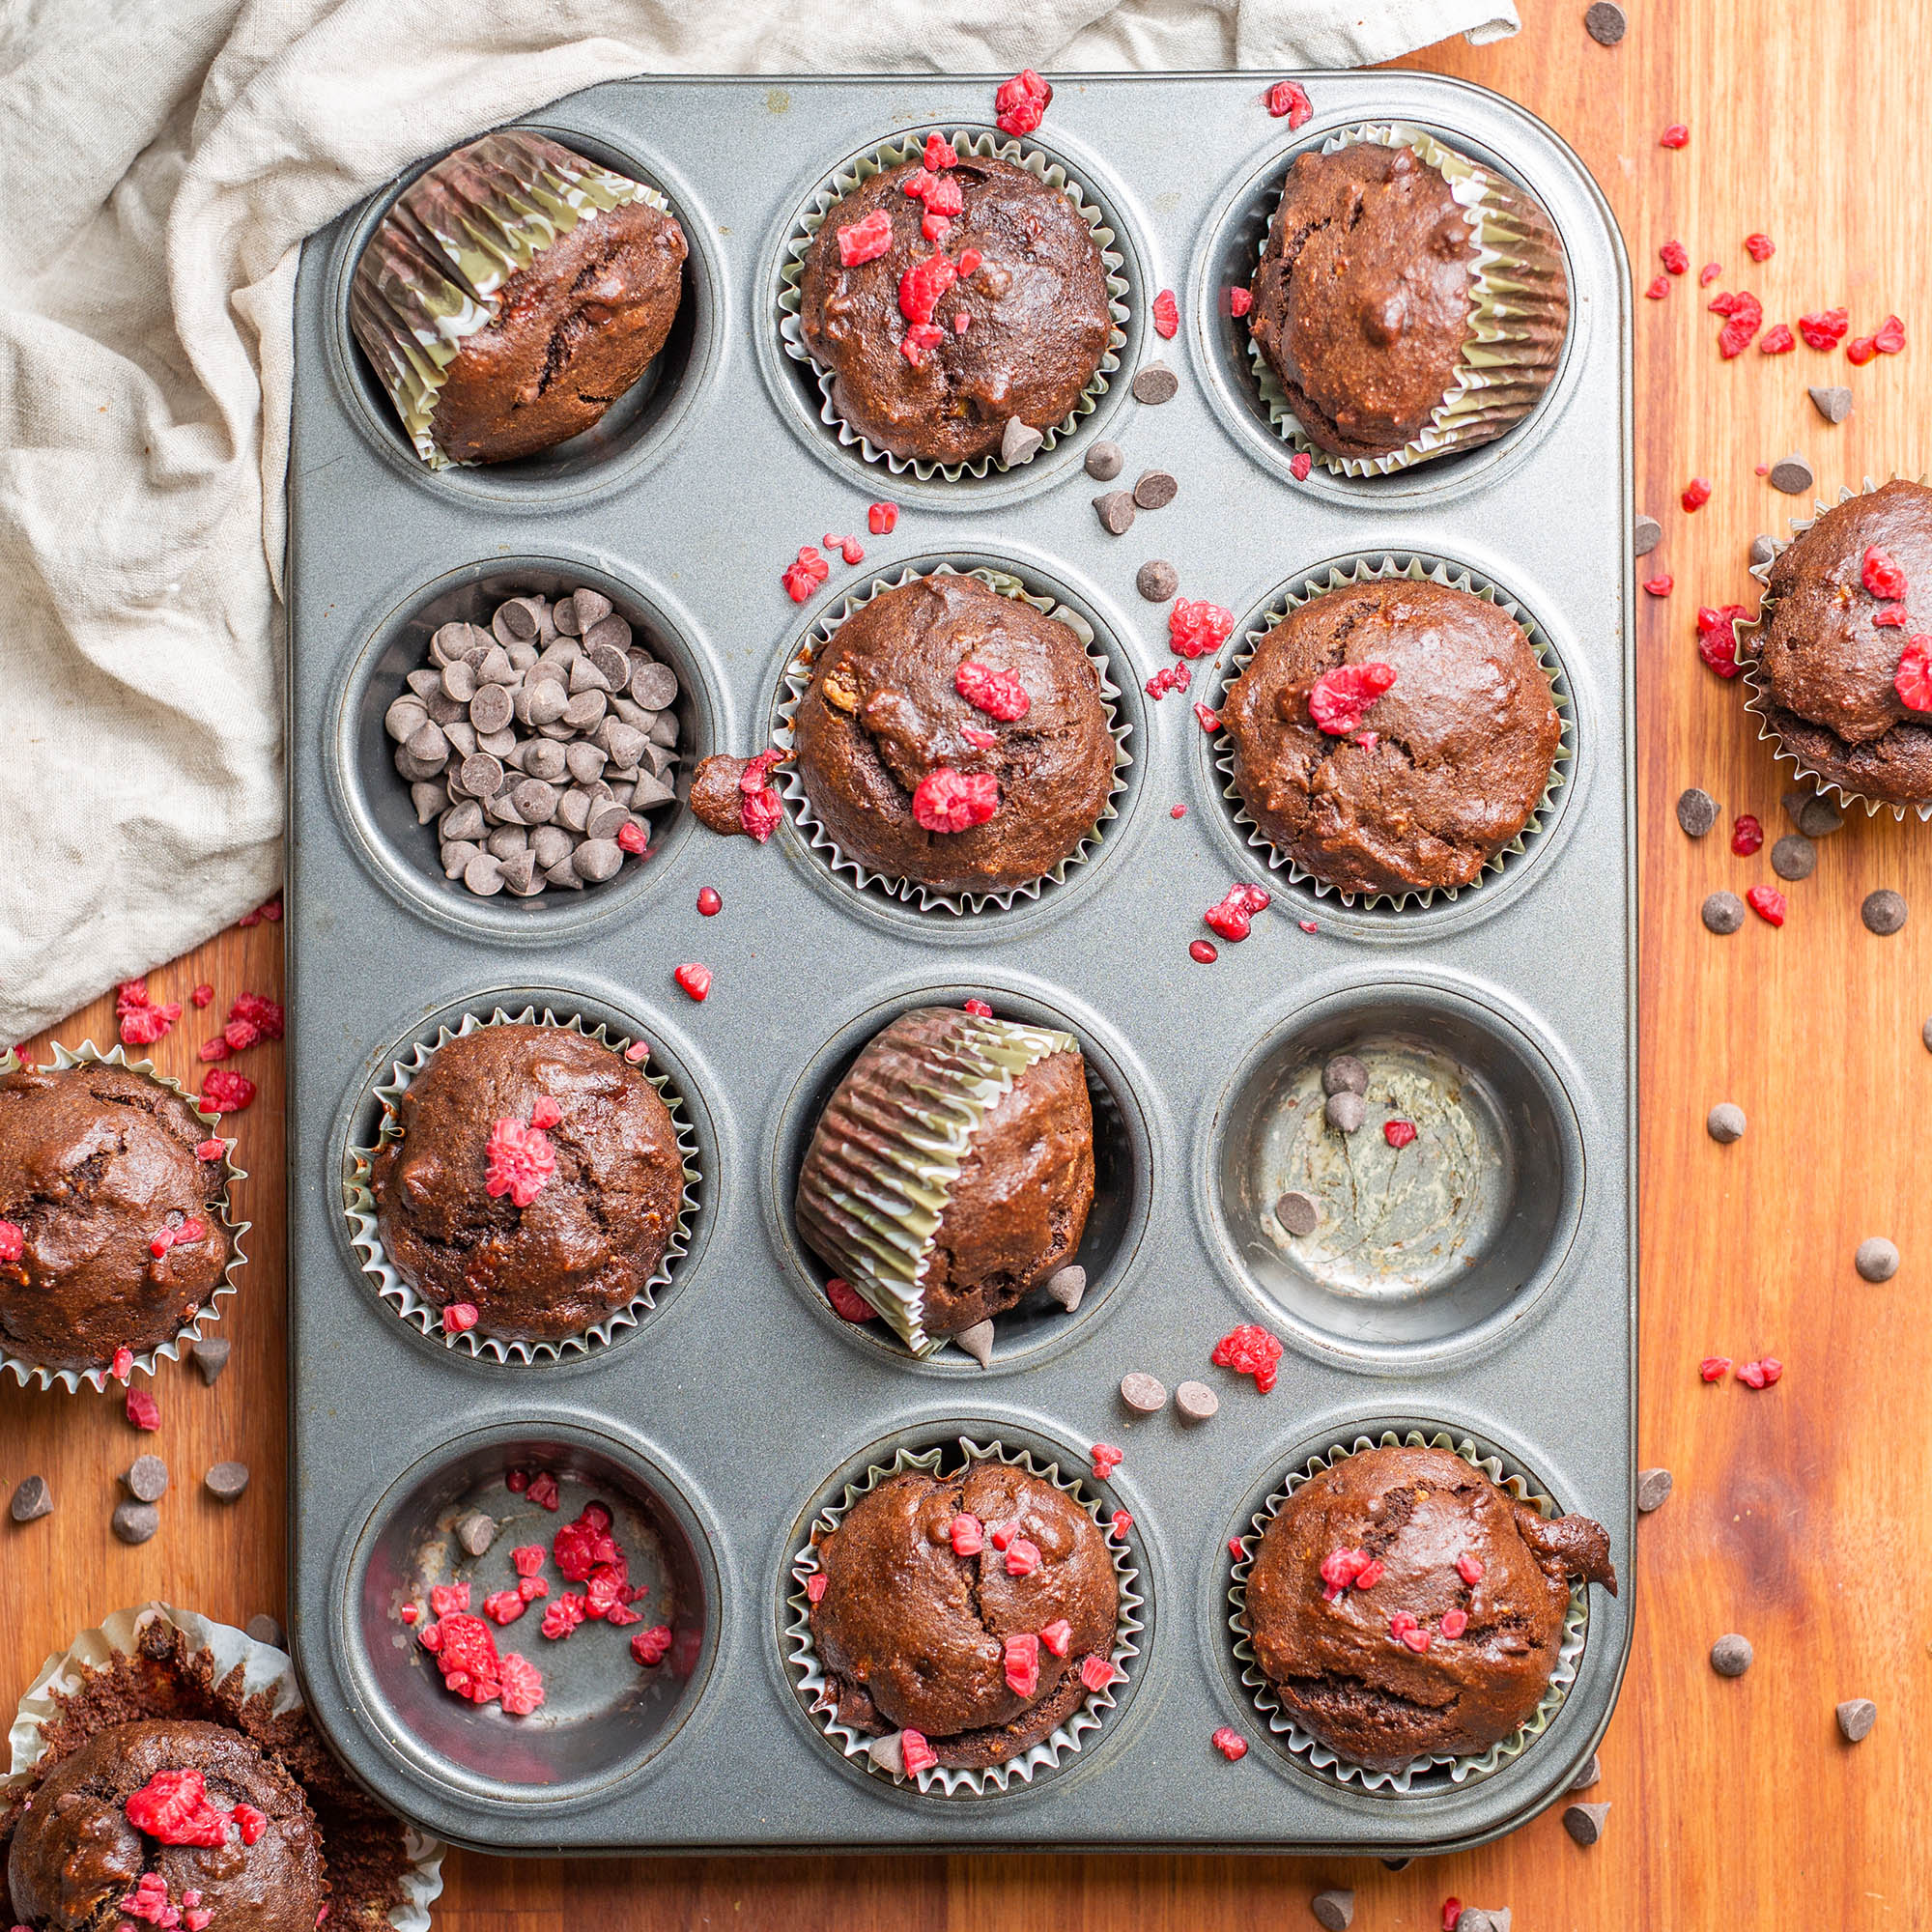 Vegan Double Chocolate Almond Butter Banana Muffins